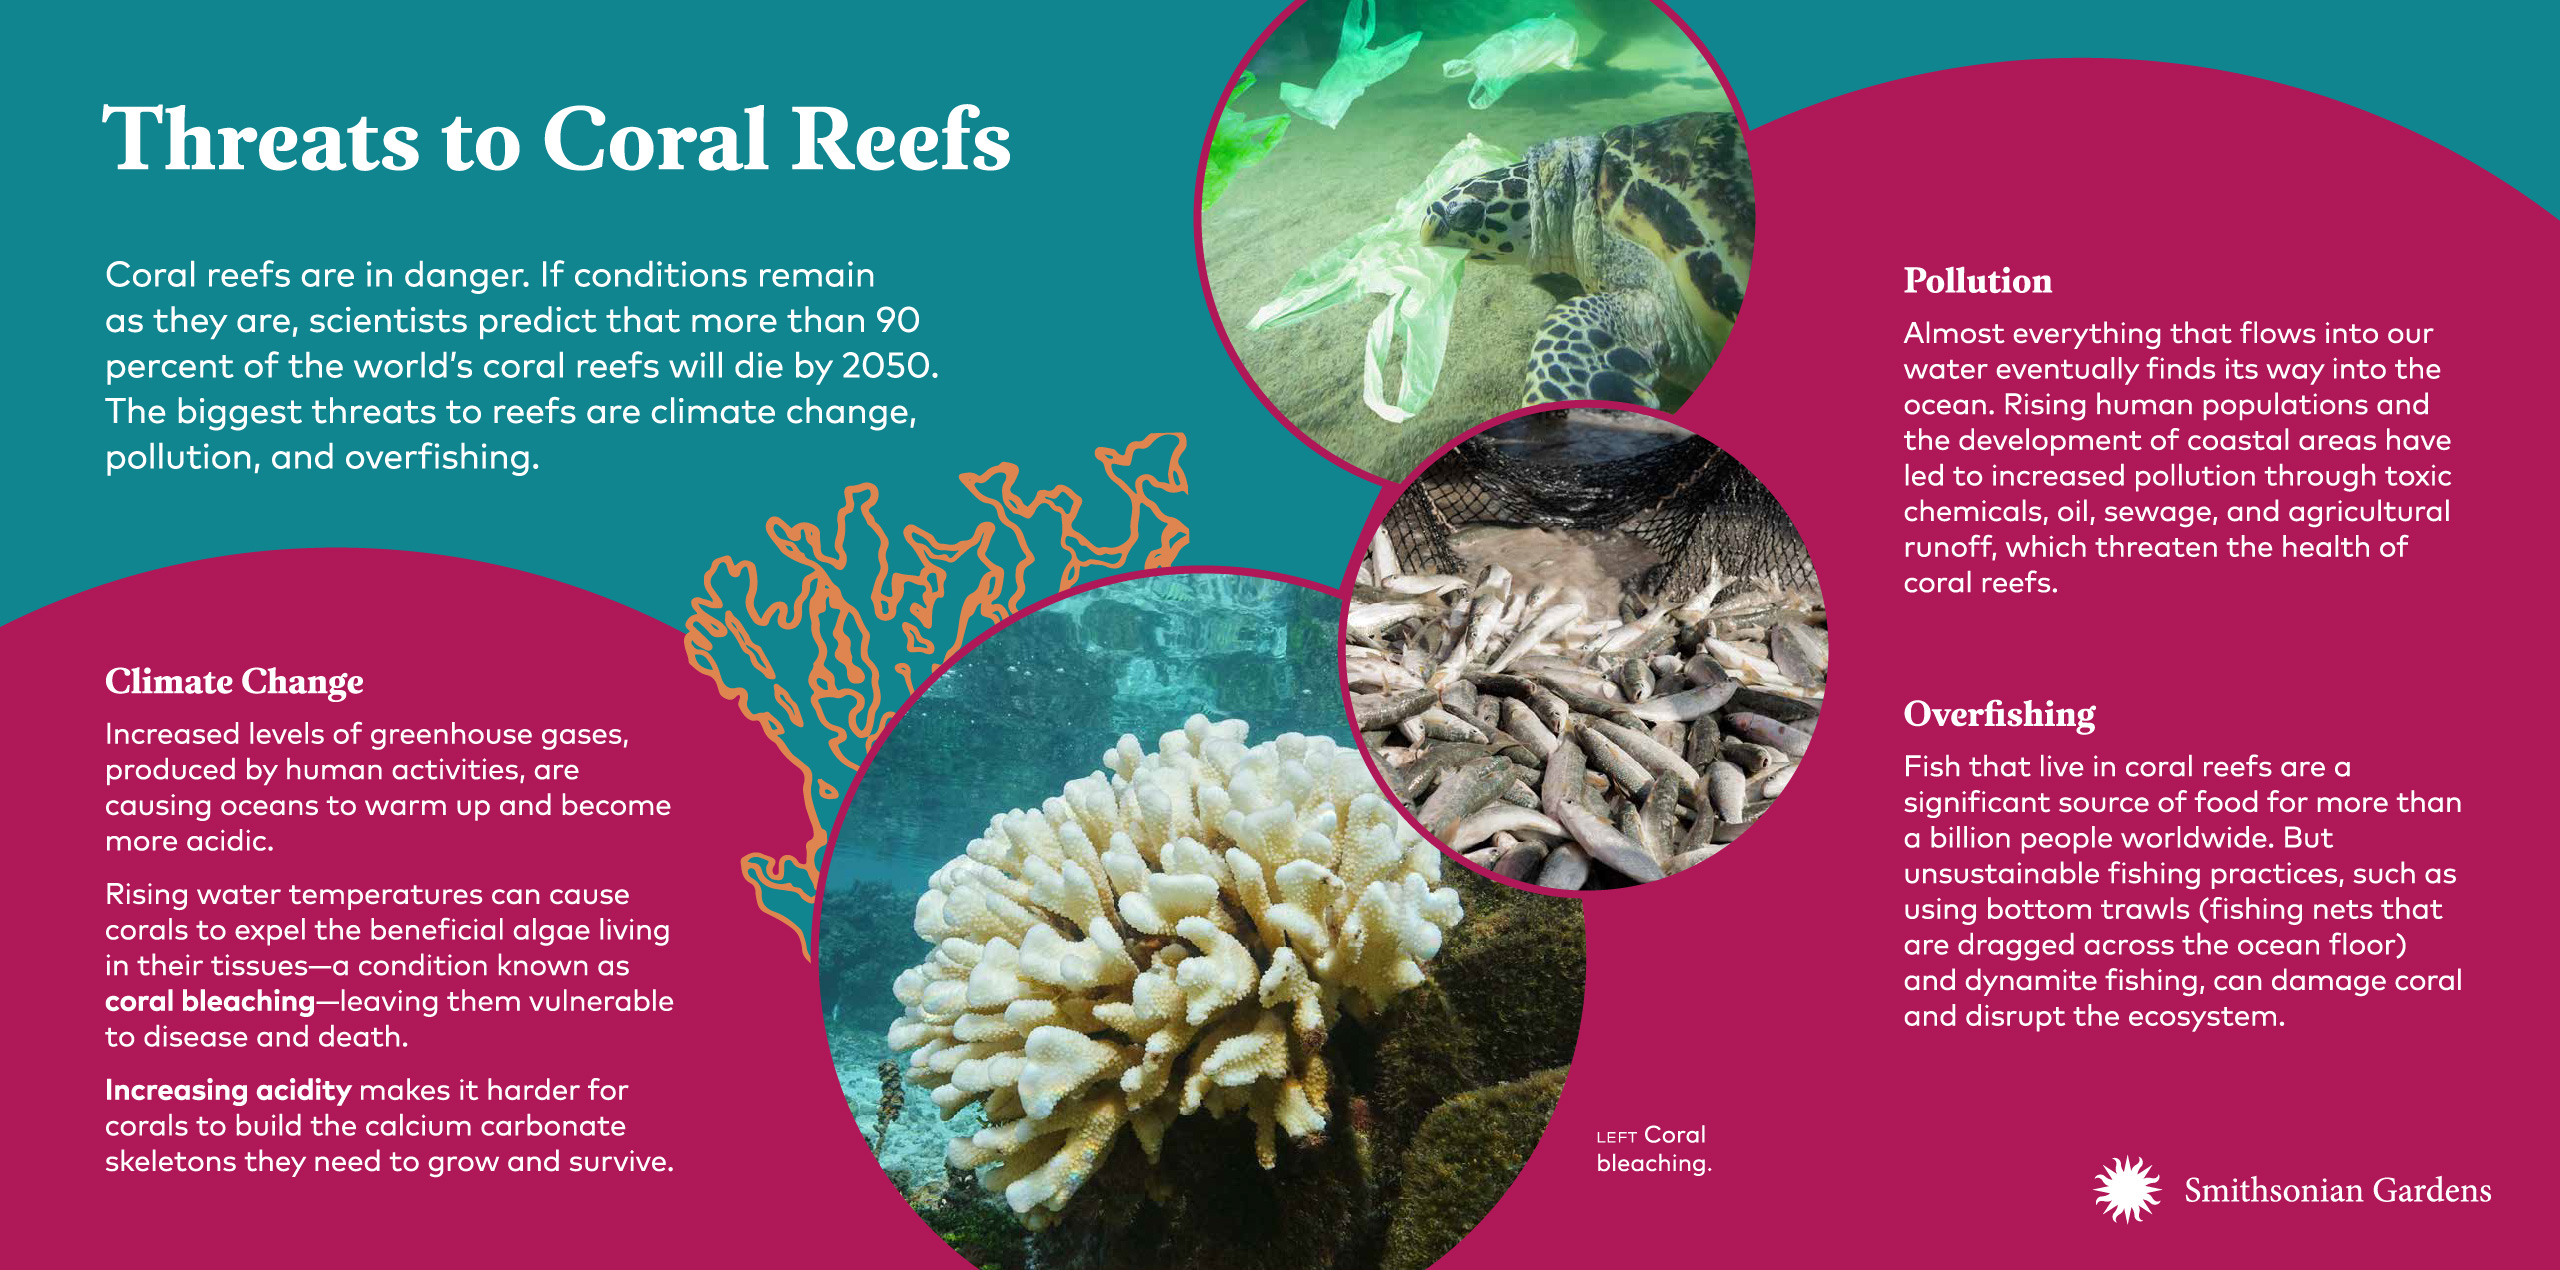 Threats to Coral Reefs exhibit panel